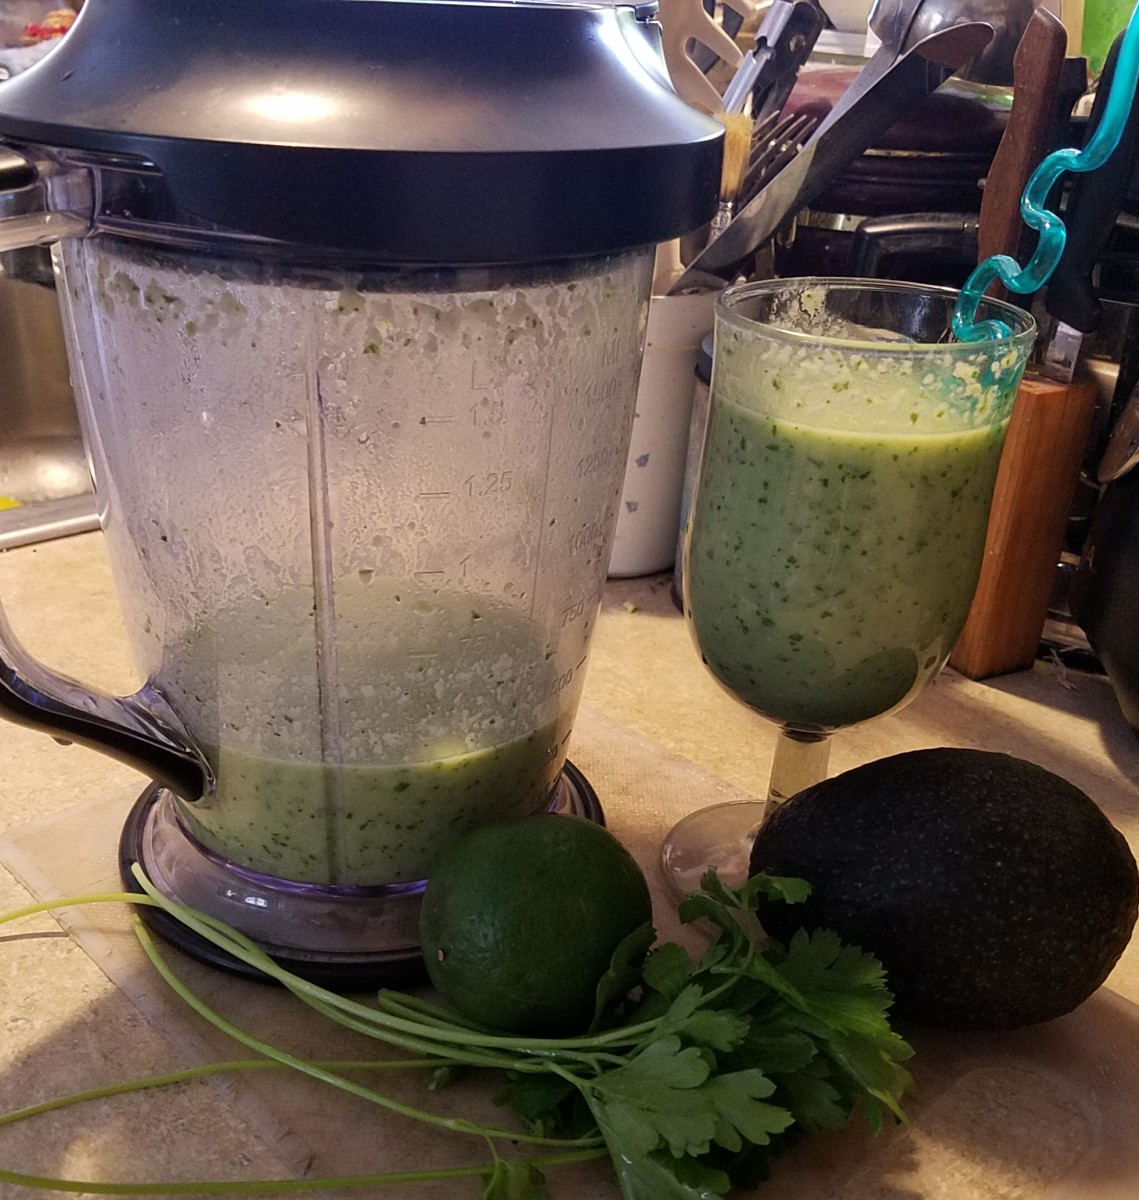 Extreme Diabetes Management: Cucumber-Parsley-Whey Protein Smoothie